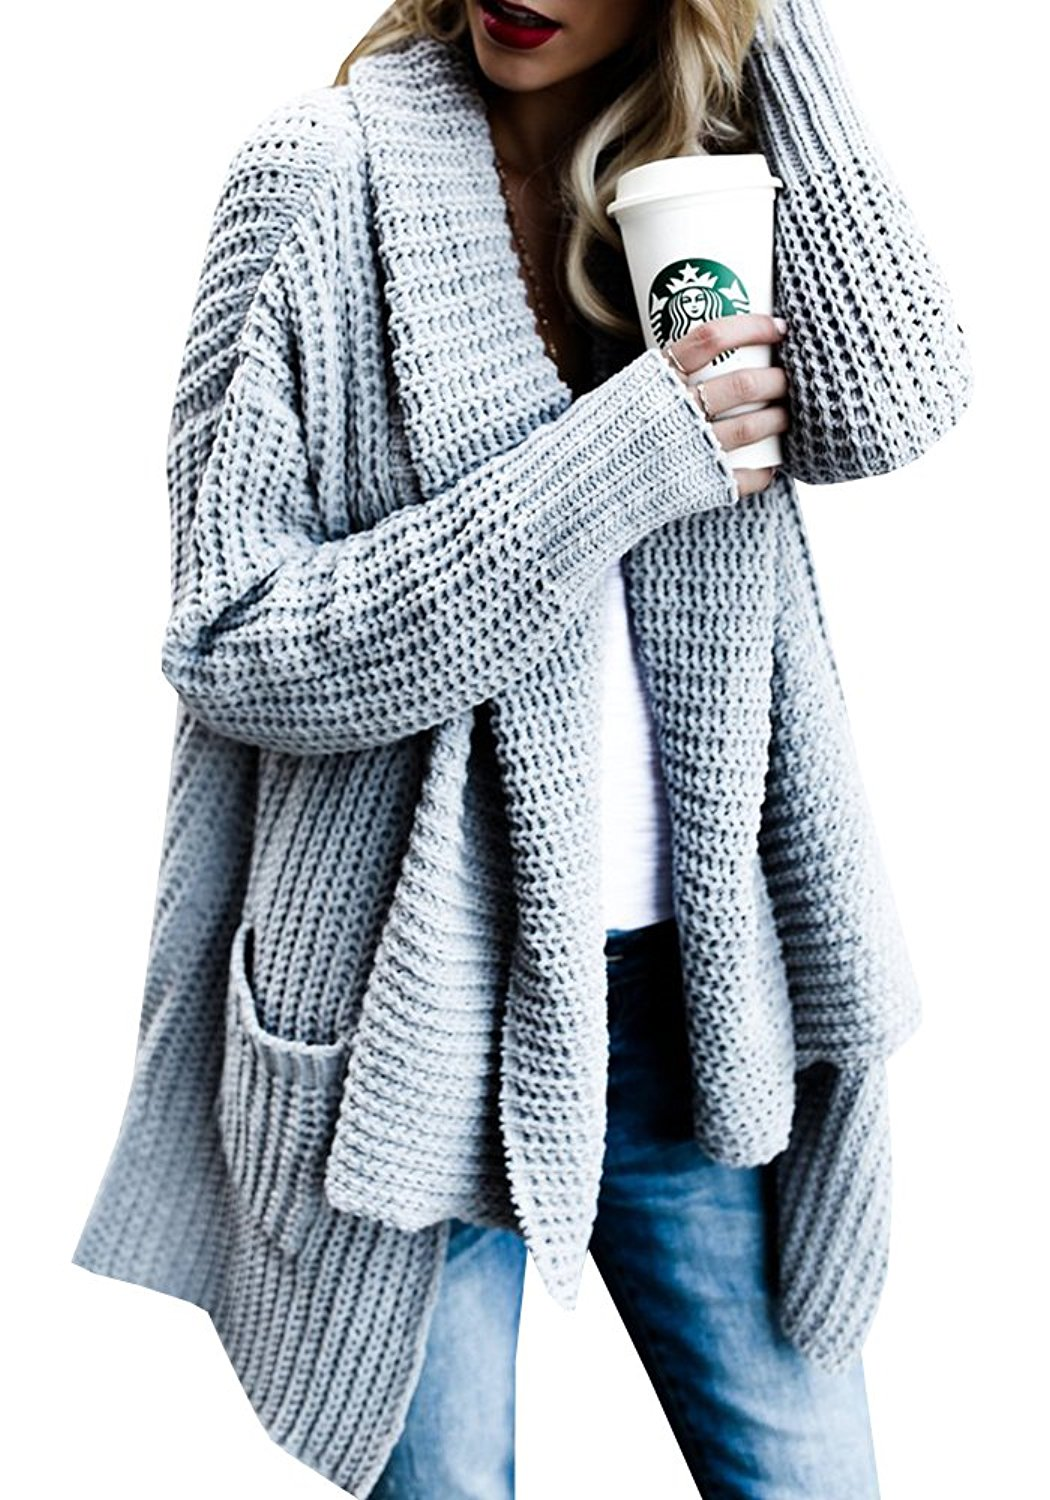 Ofenbuy Womens Cardigan Sweaters Open Front Long Sleeve Loose Chunky Knit Cardigans Outwears